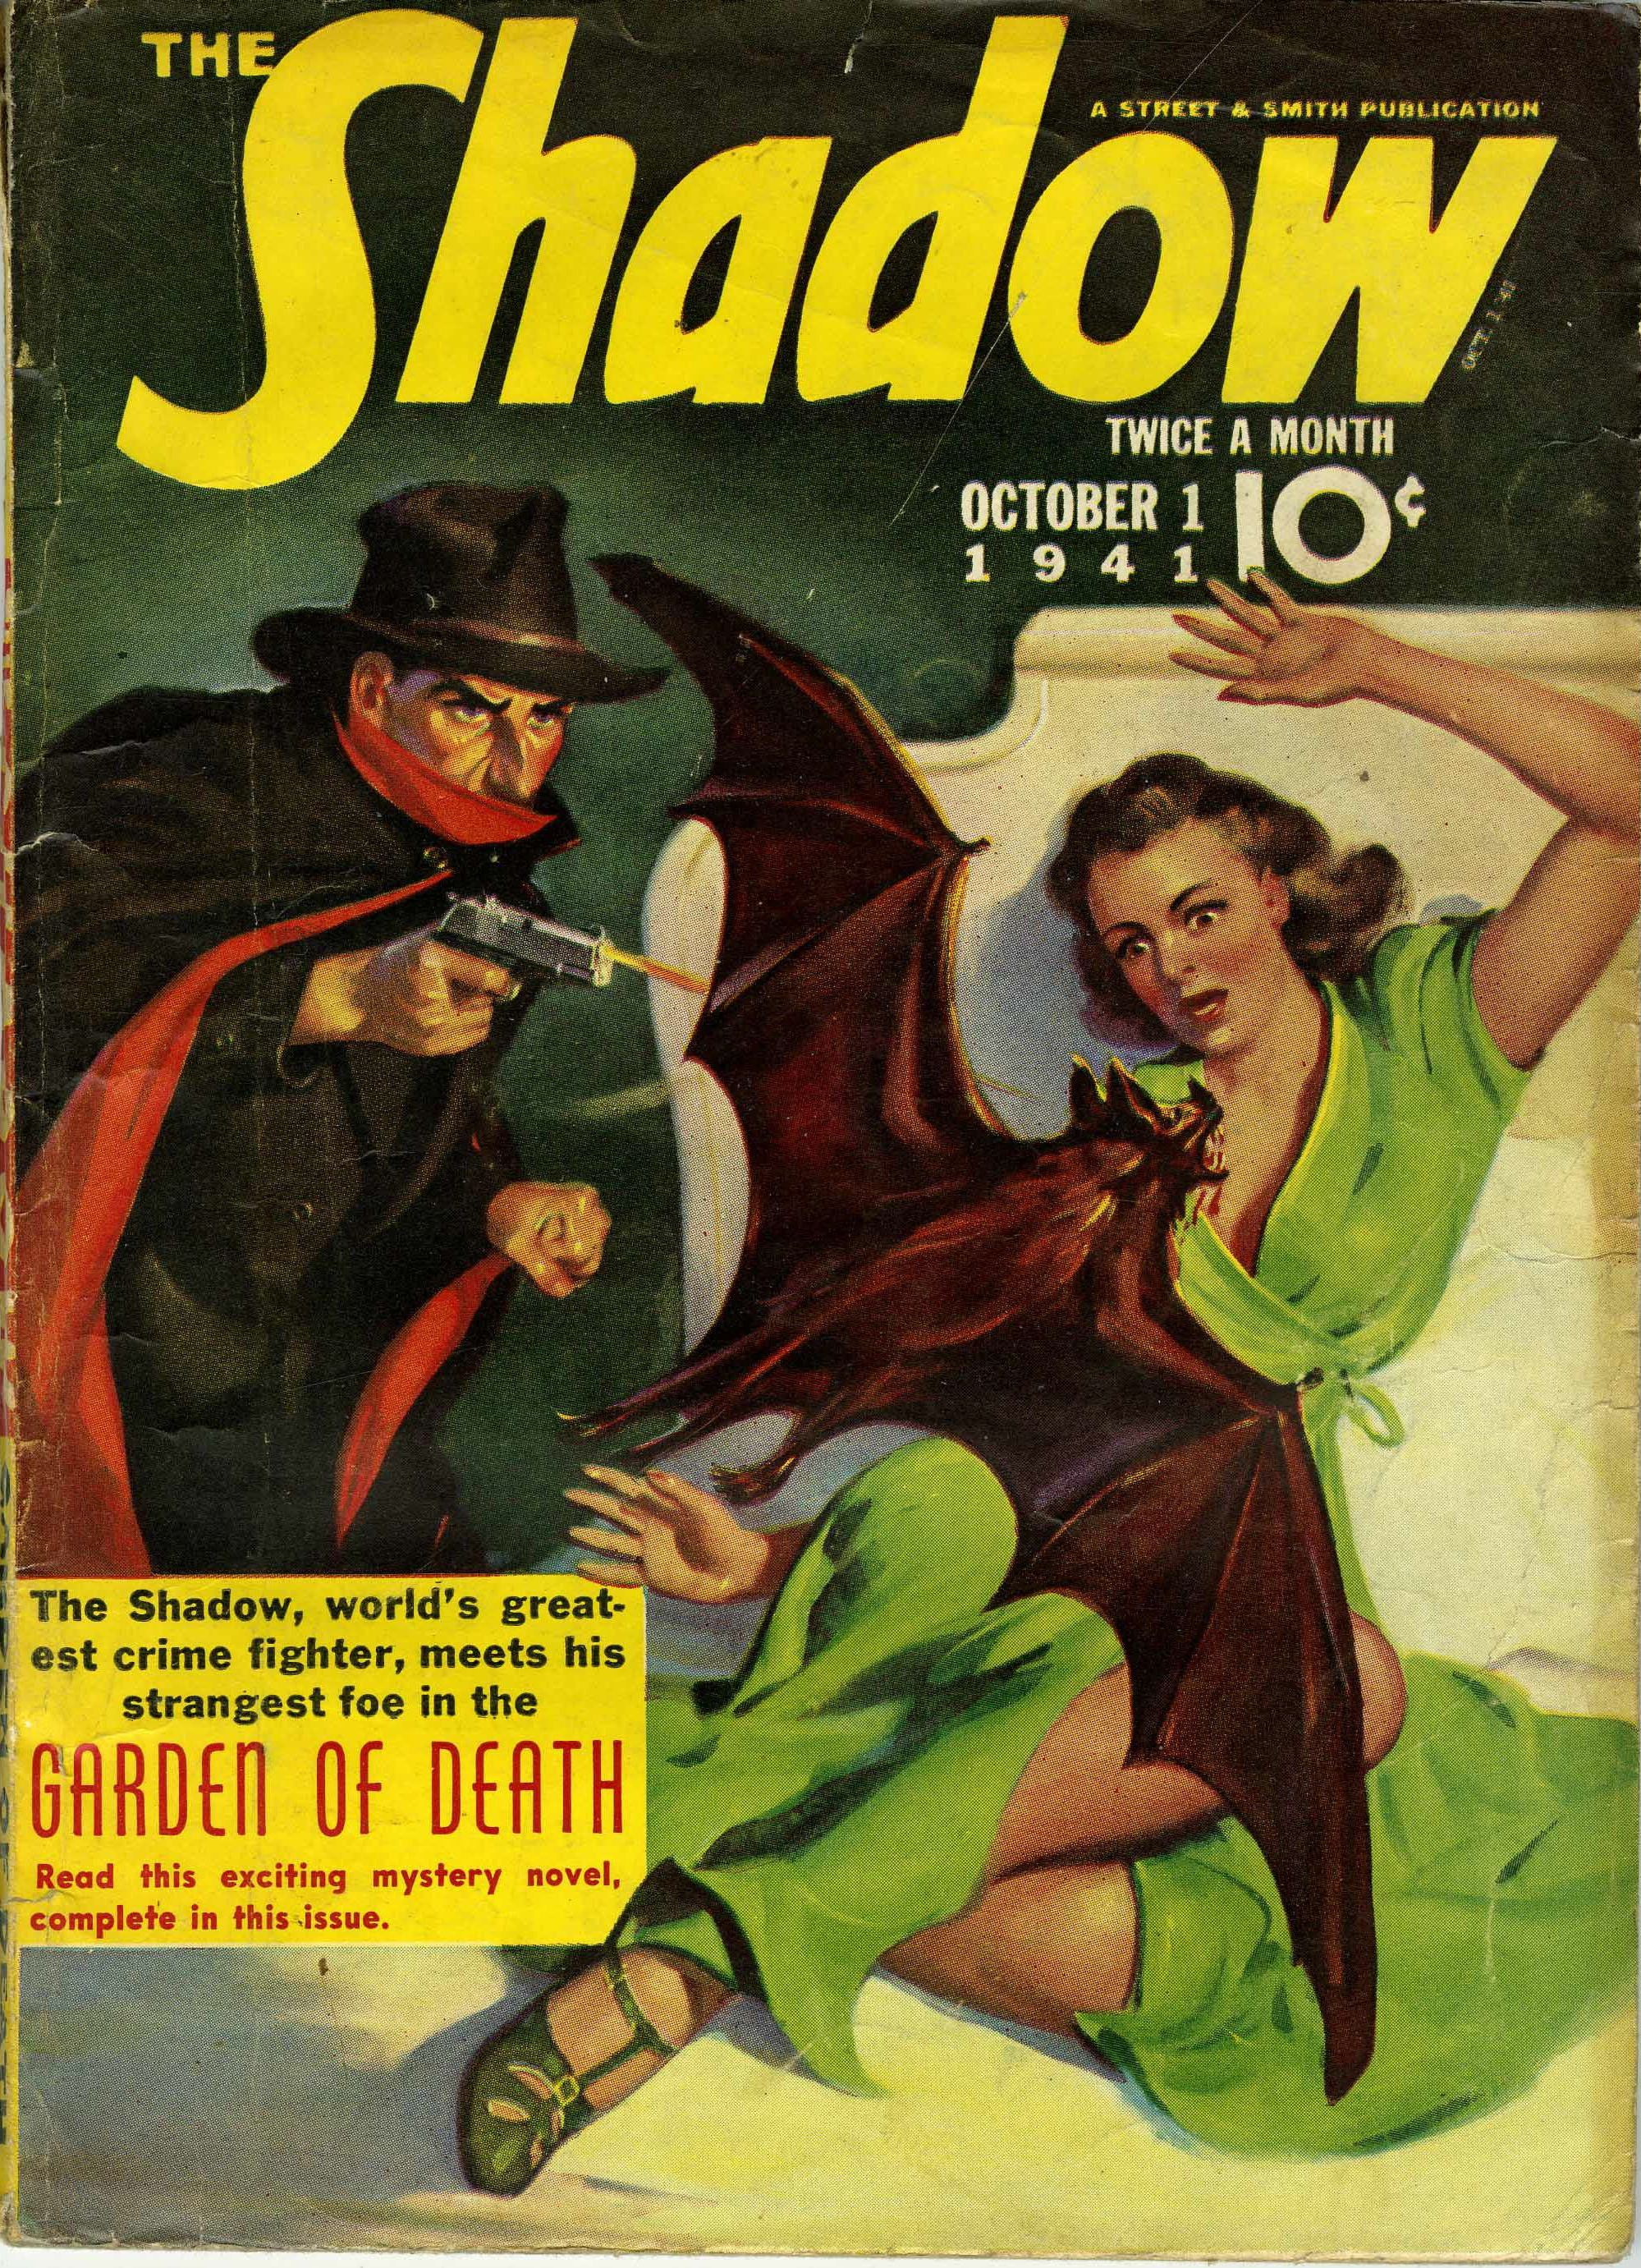 28443290-Shadow_V39#3_Horror_cover_by_George_Rozen_with_drooling_bat_attacking_good_girl_in_bed